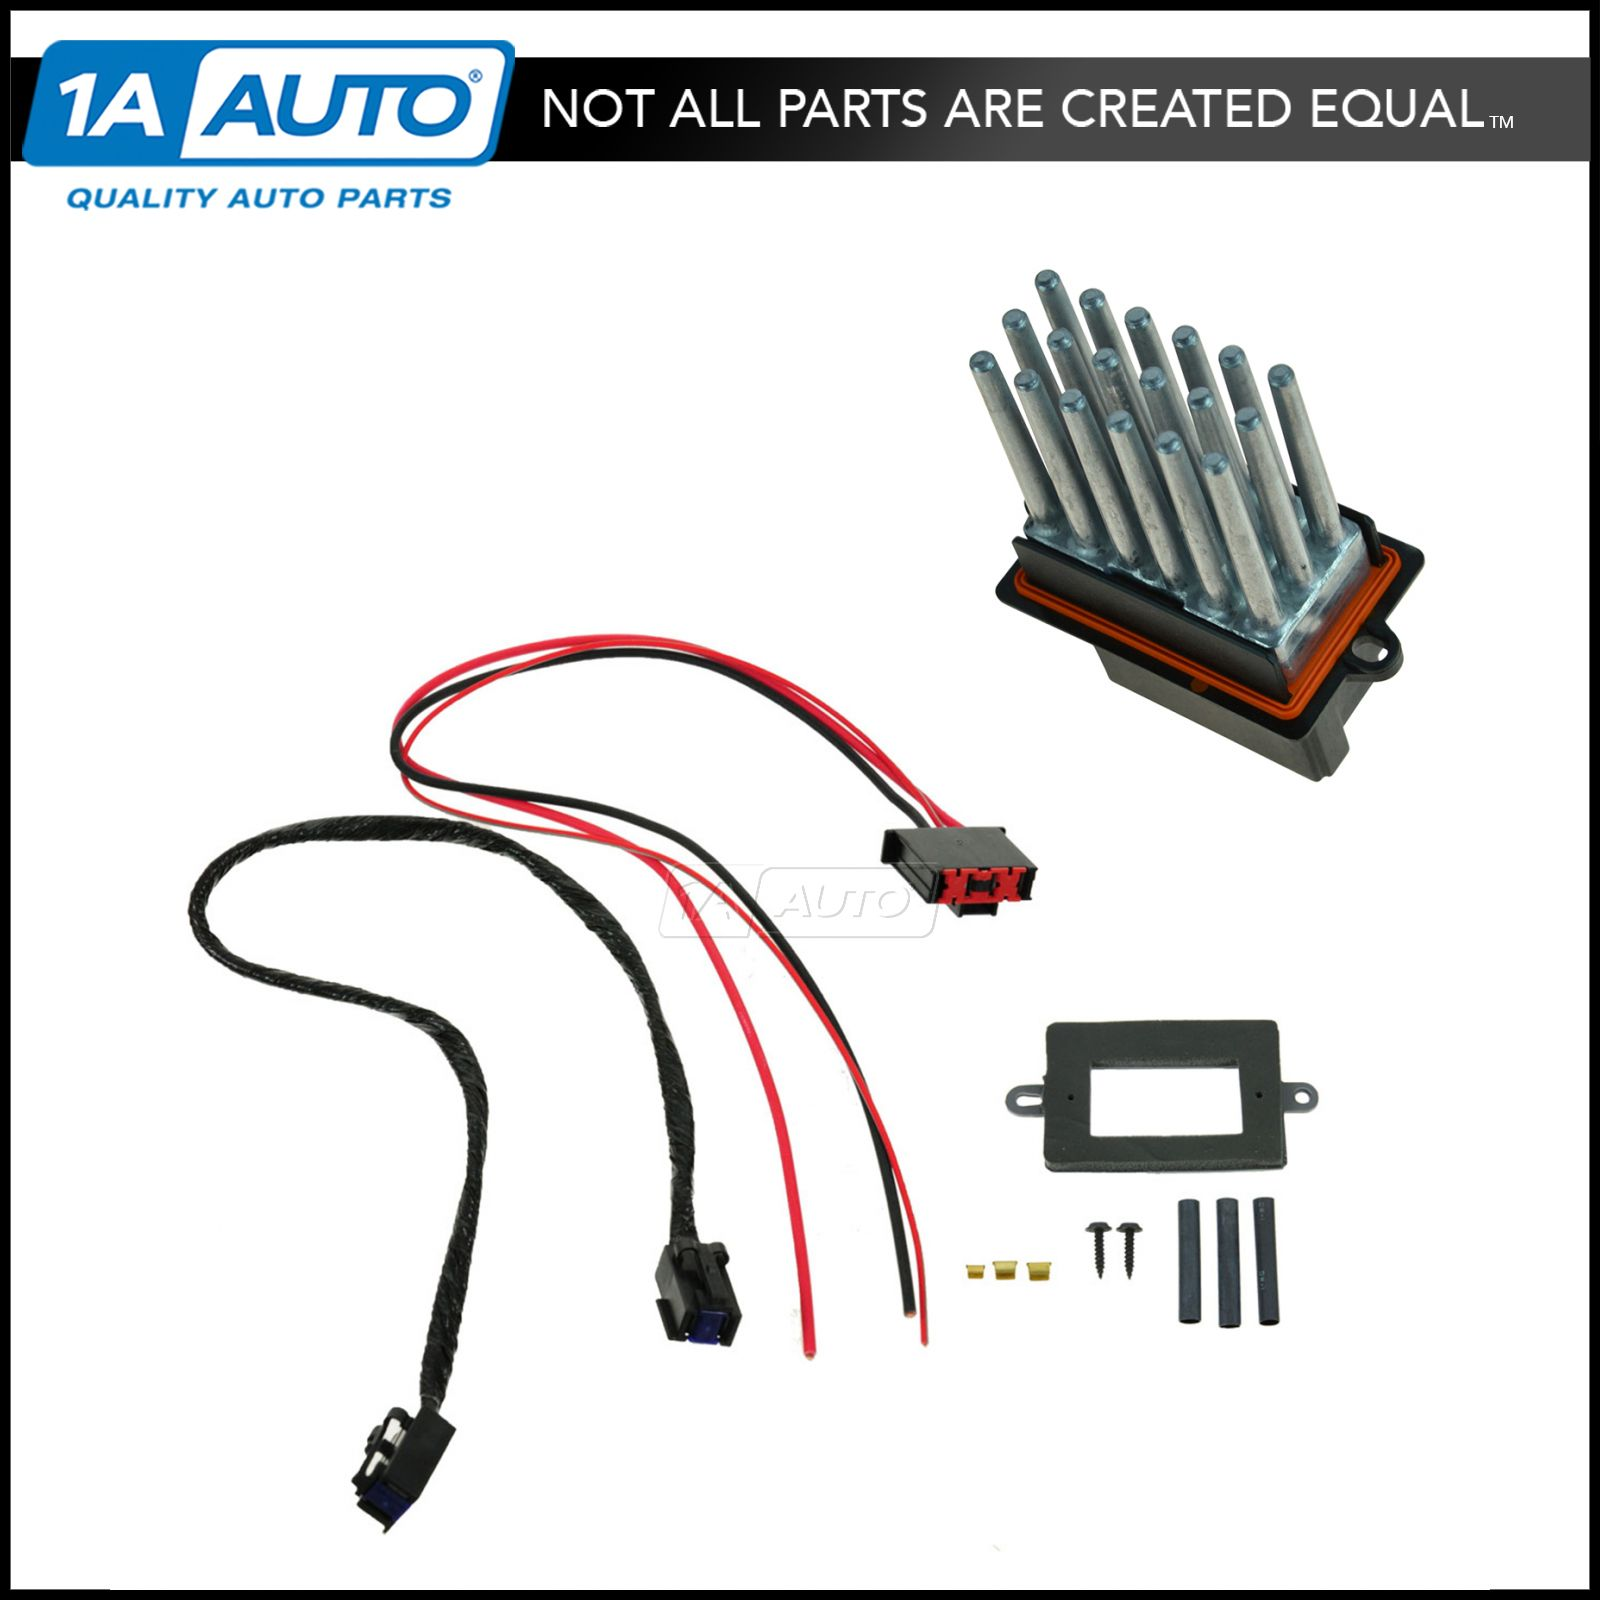 OEM Blower Motor Resistor Wiring Harness Upgrade Kit for Jeep Grand Cherokee  New